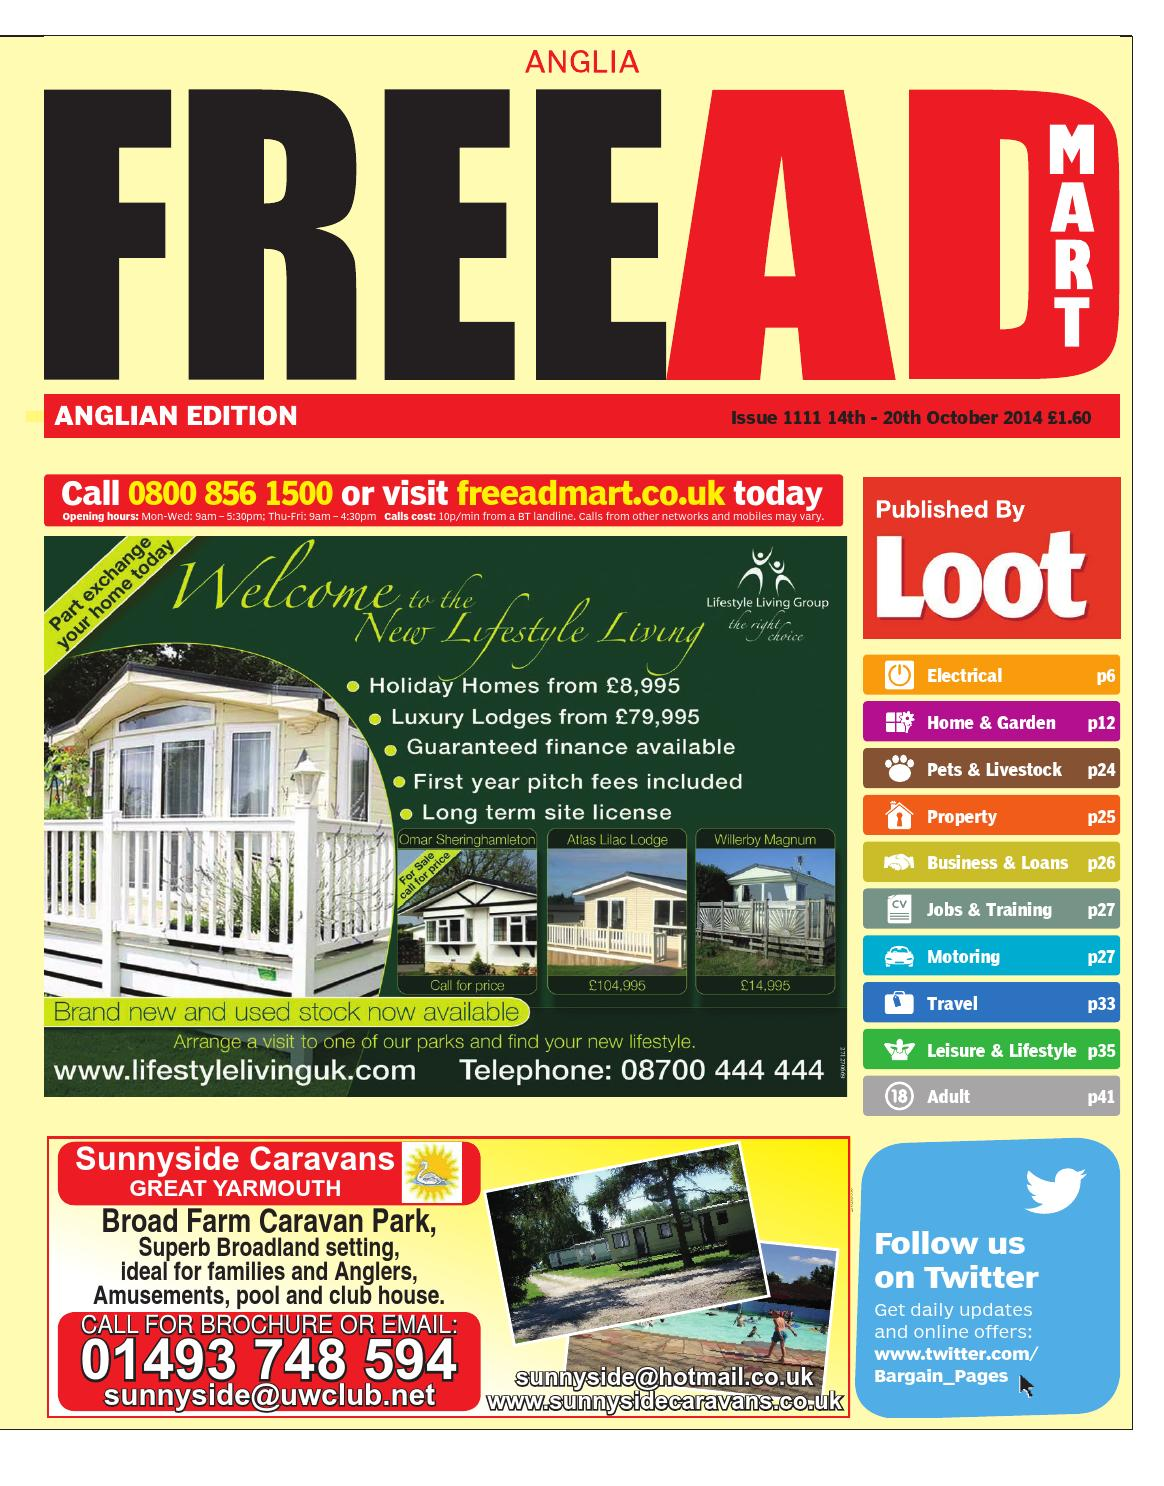 Miraculous Free Ad Mart Anglian 14Th October 2014 By Loot Issuu Wiring Cloud Overrenstrafr09Org